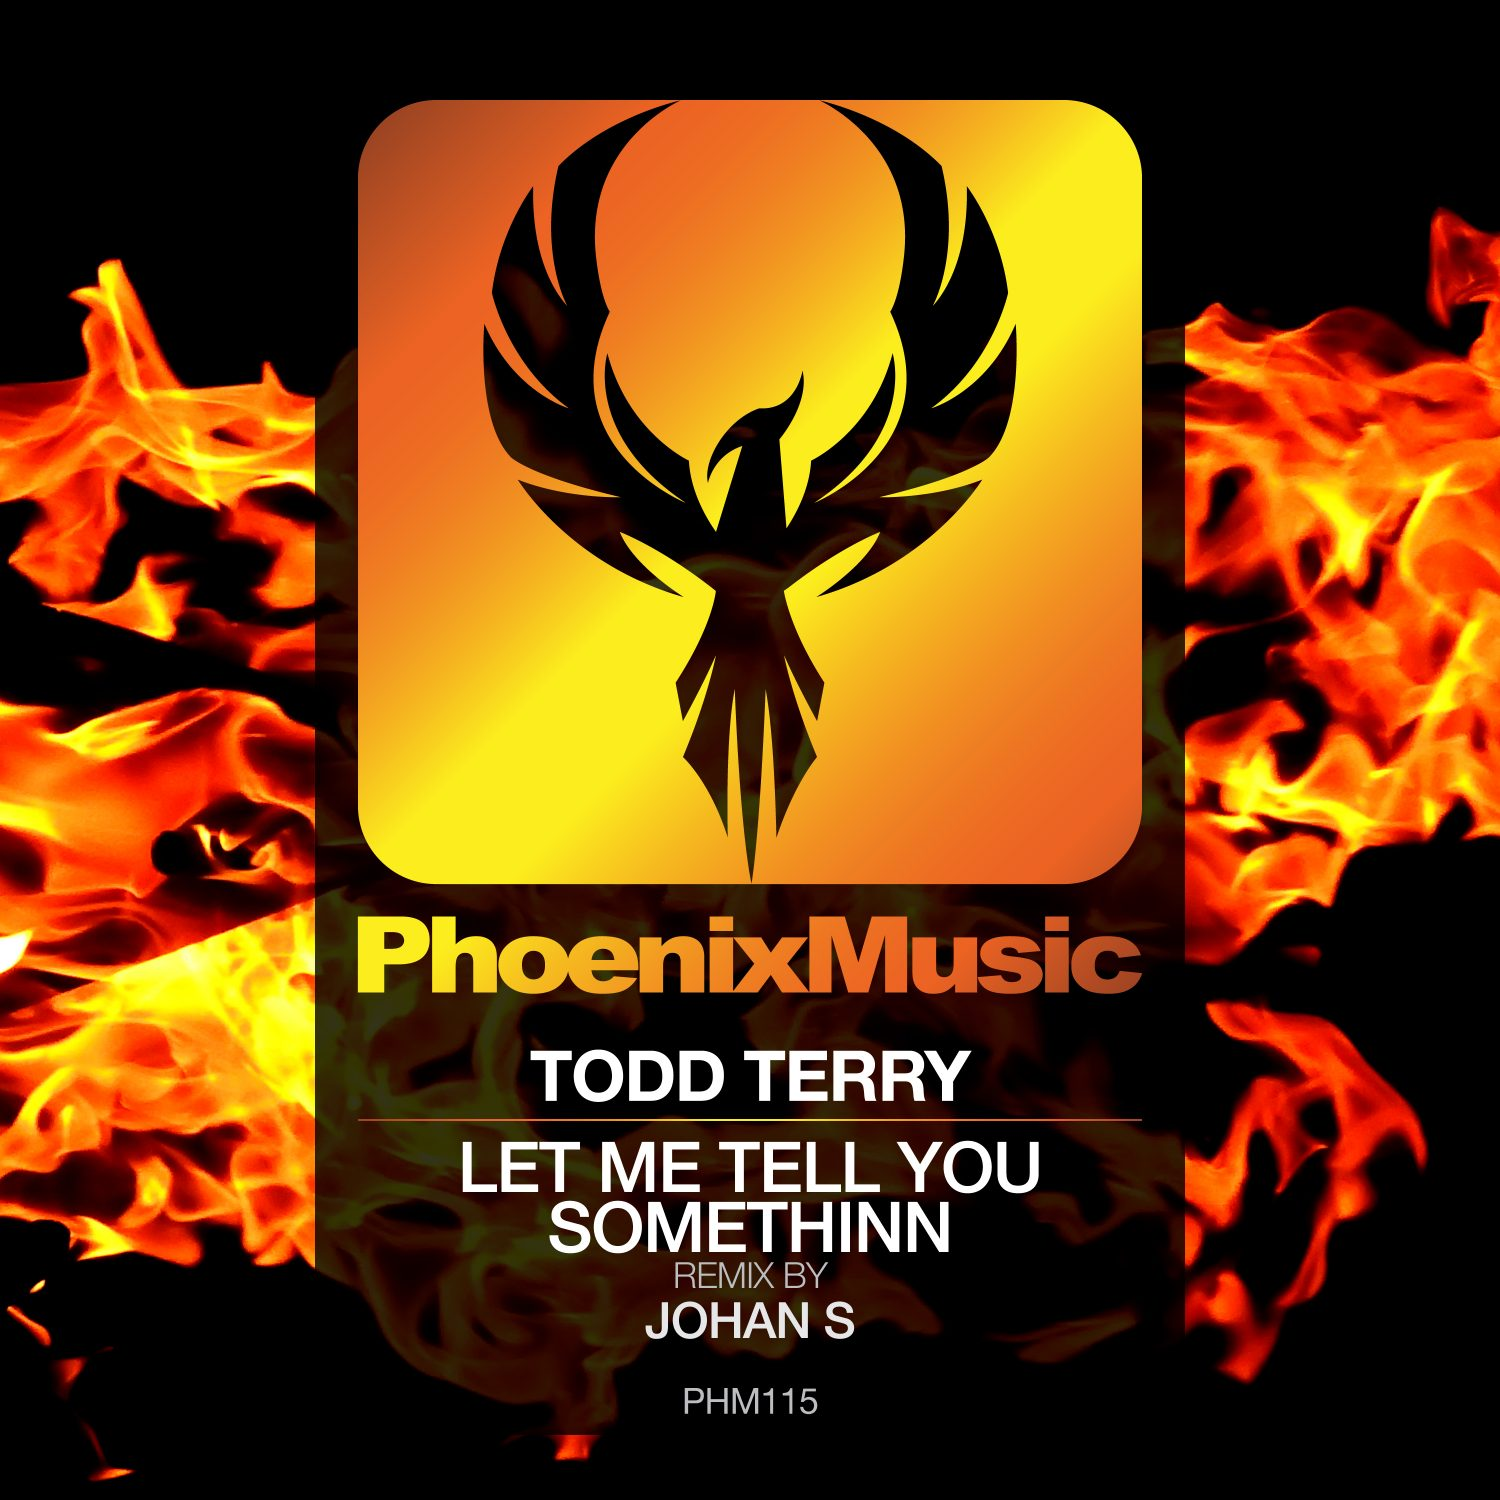 PHM115 - Todd Terry - Let Me Tell You Somethinn (Johan S Remix)